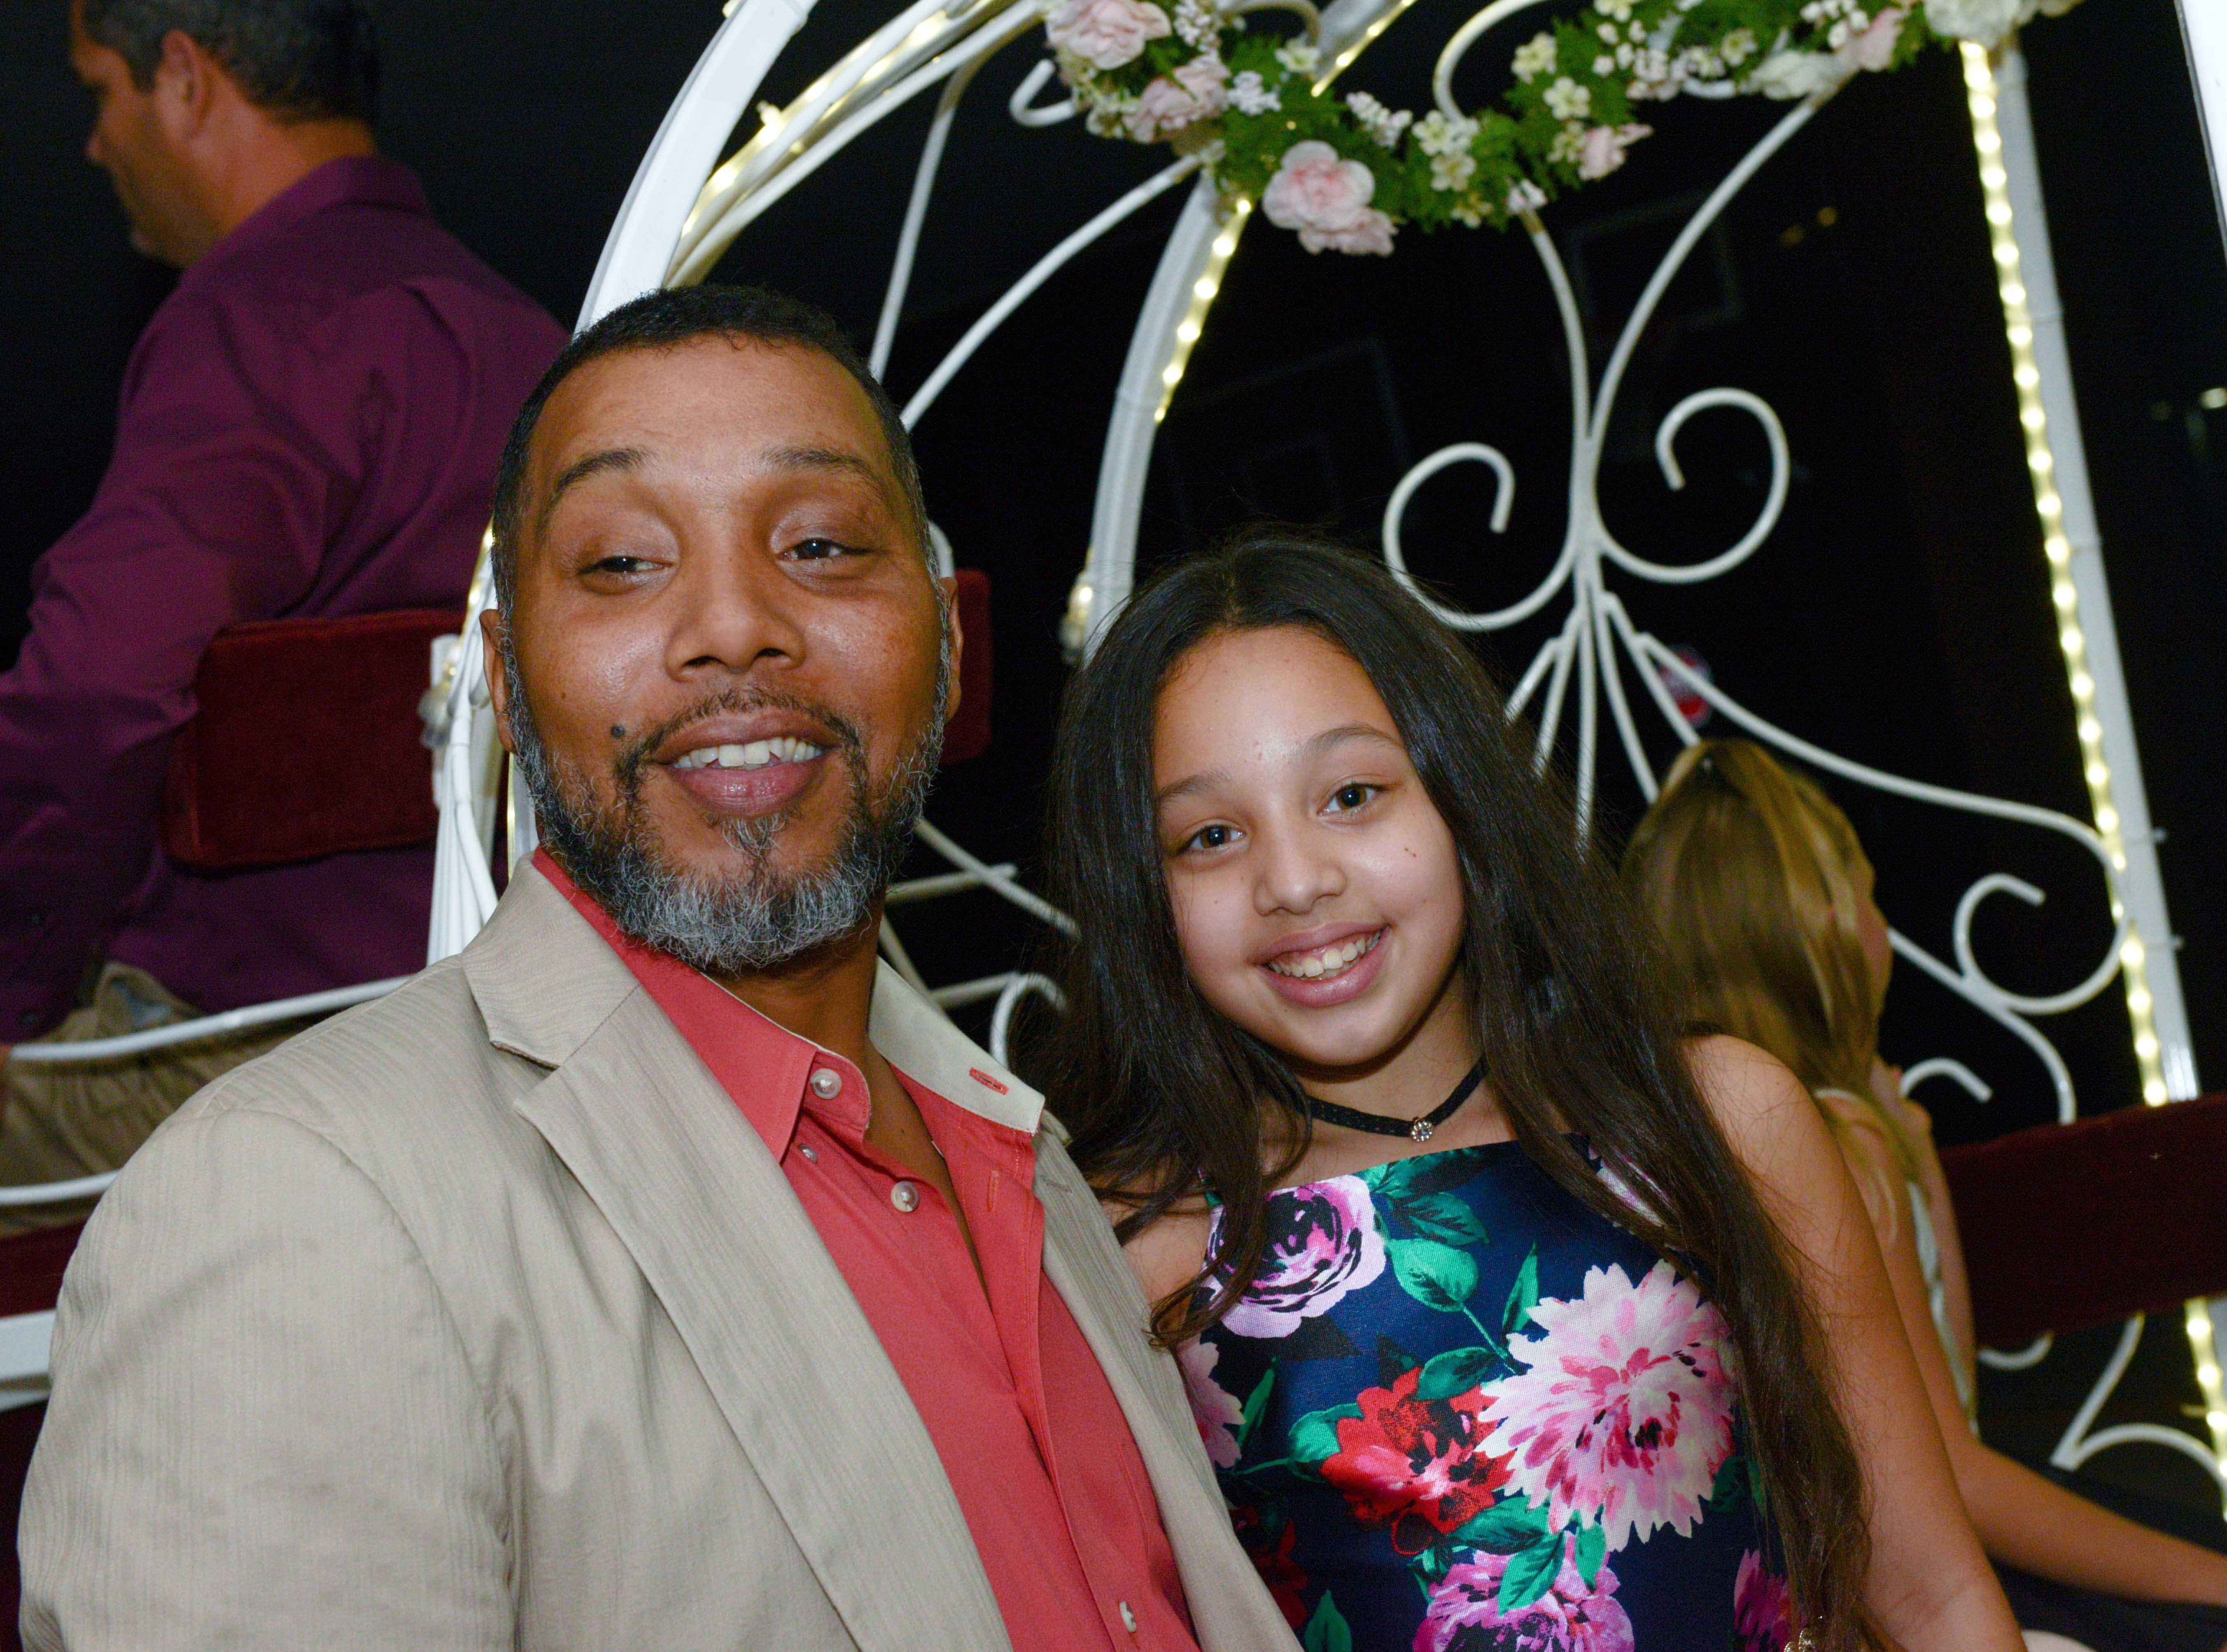 Will and Adelina Falcon at the Father/Daughter/Someone Special Dance at Renaissance Charter School of St. Lucie.